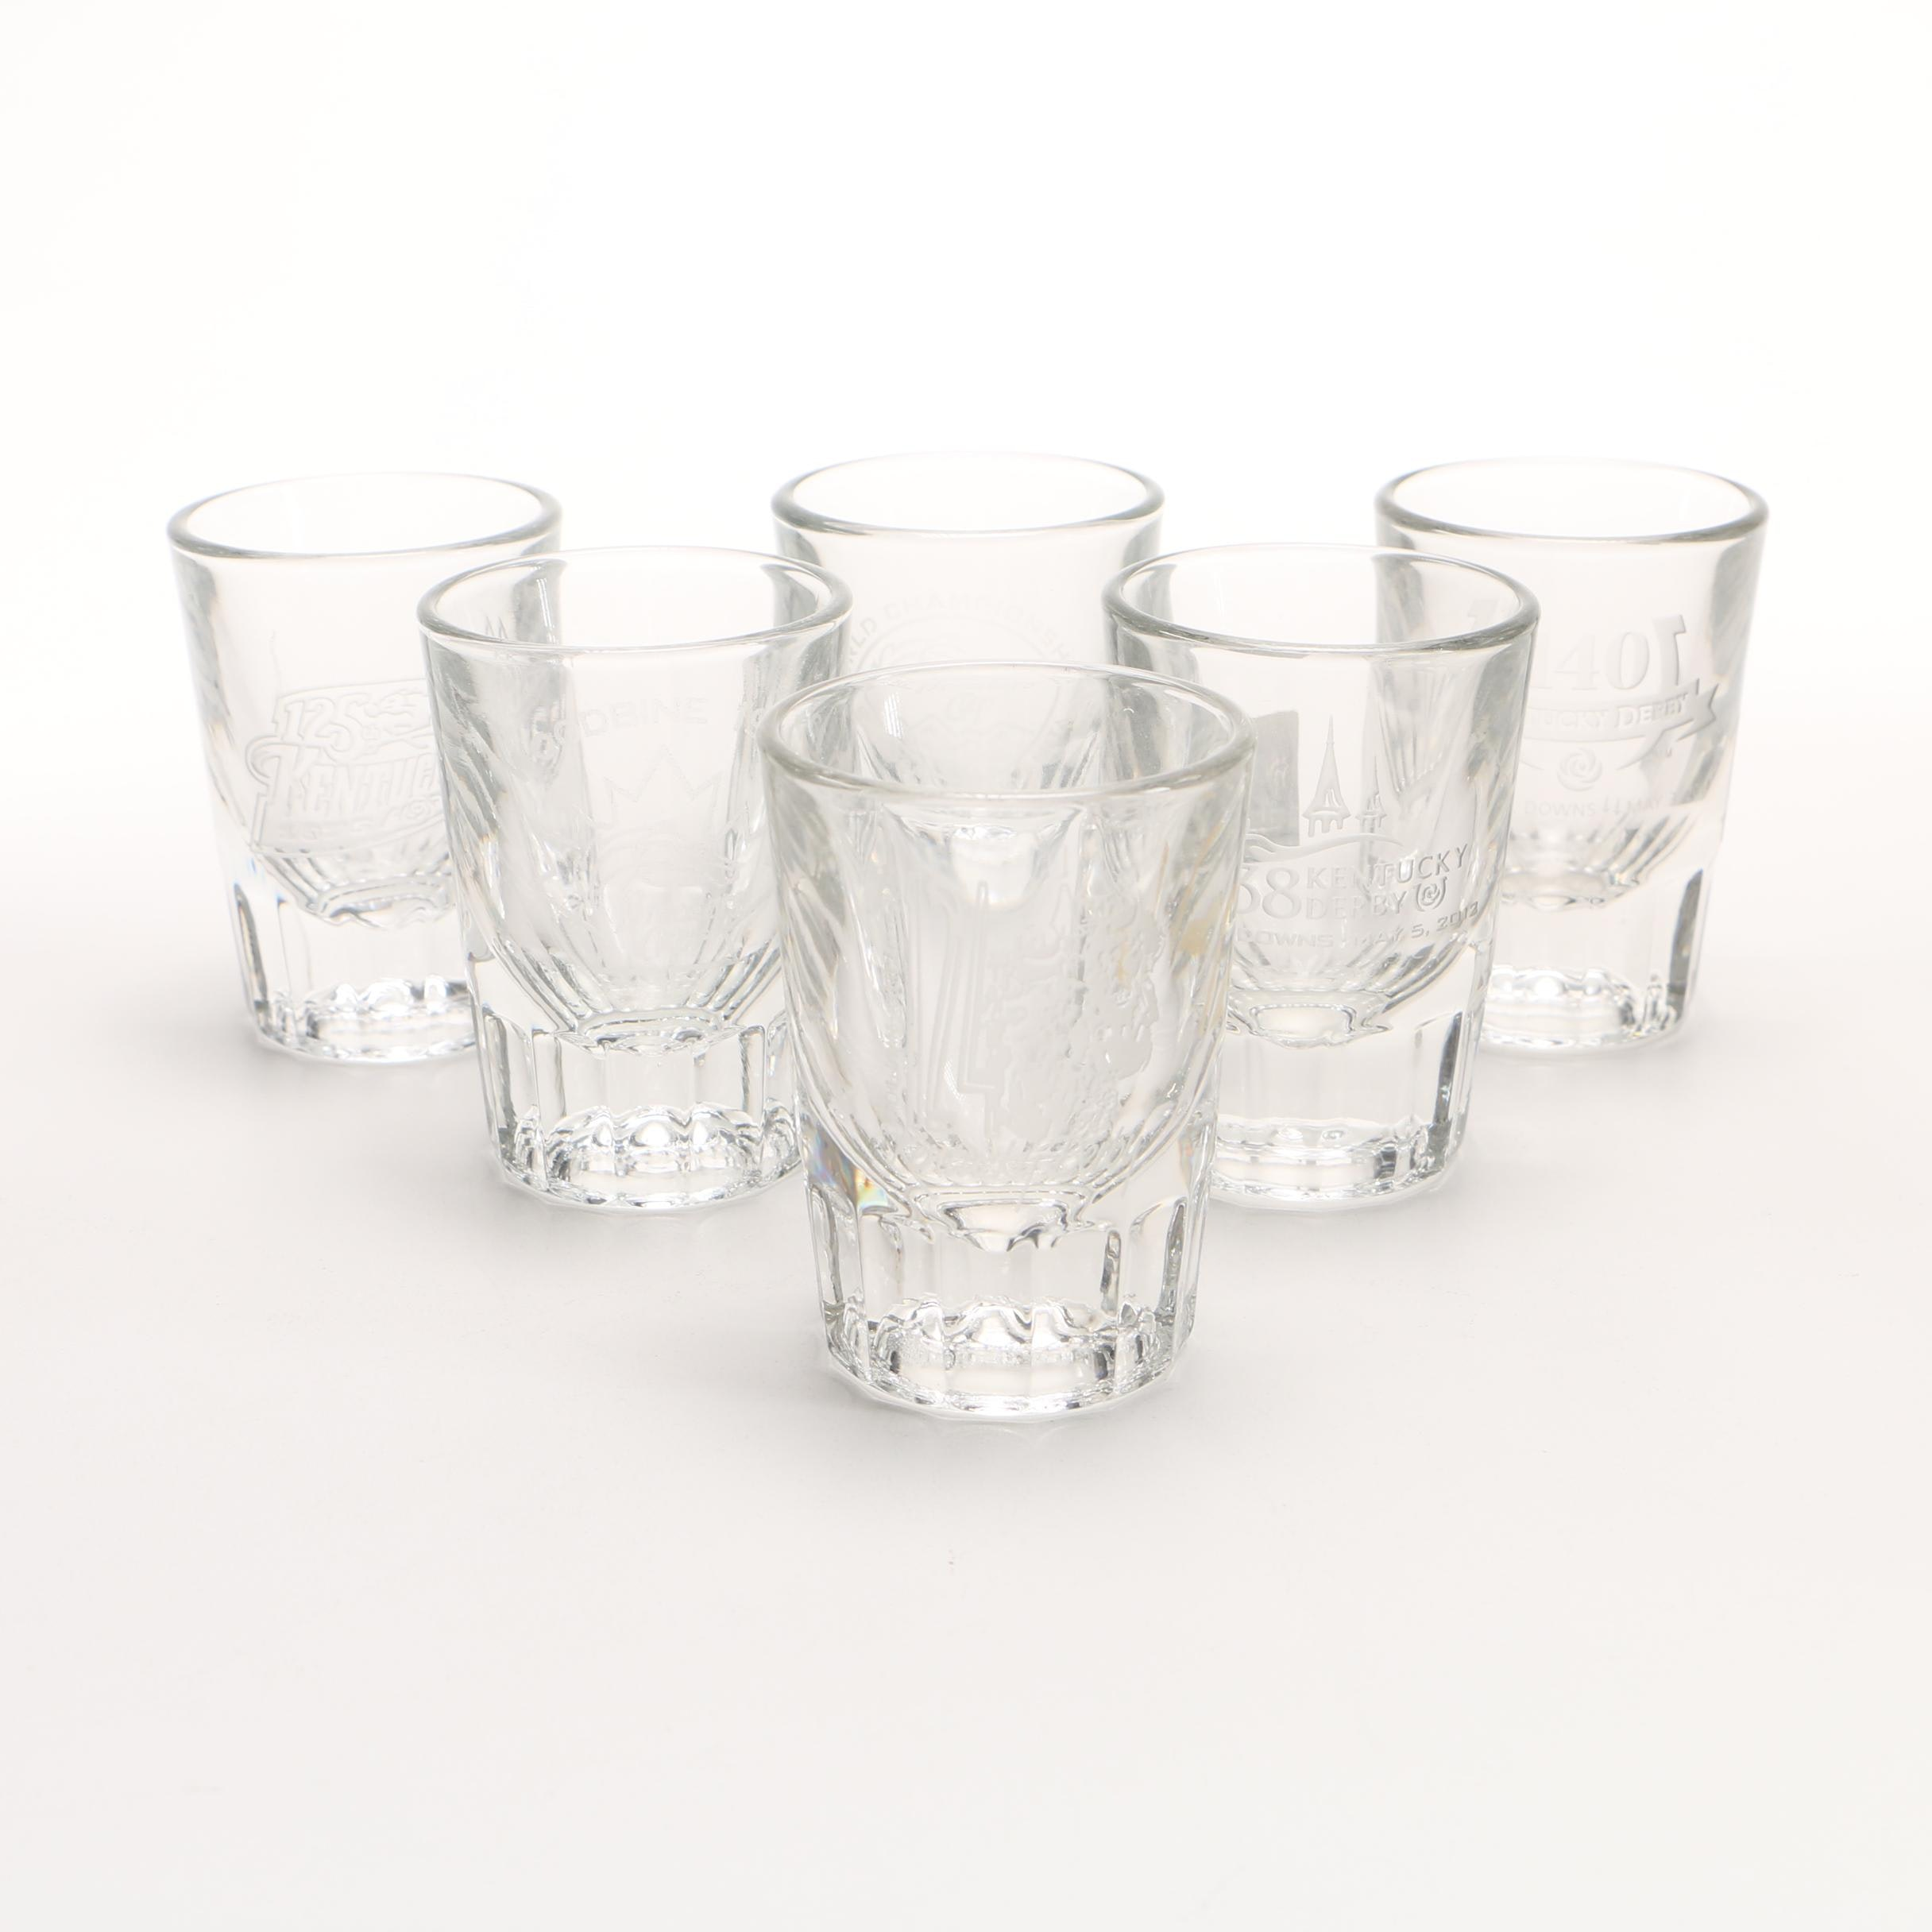 Collection of Kentucky Derby Shot Glasses